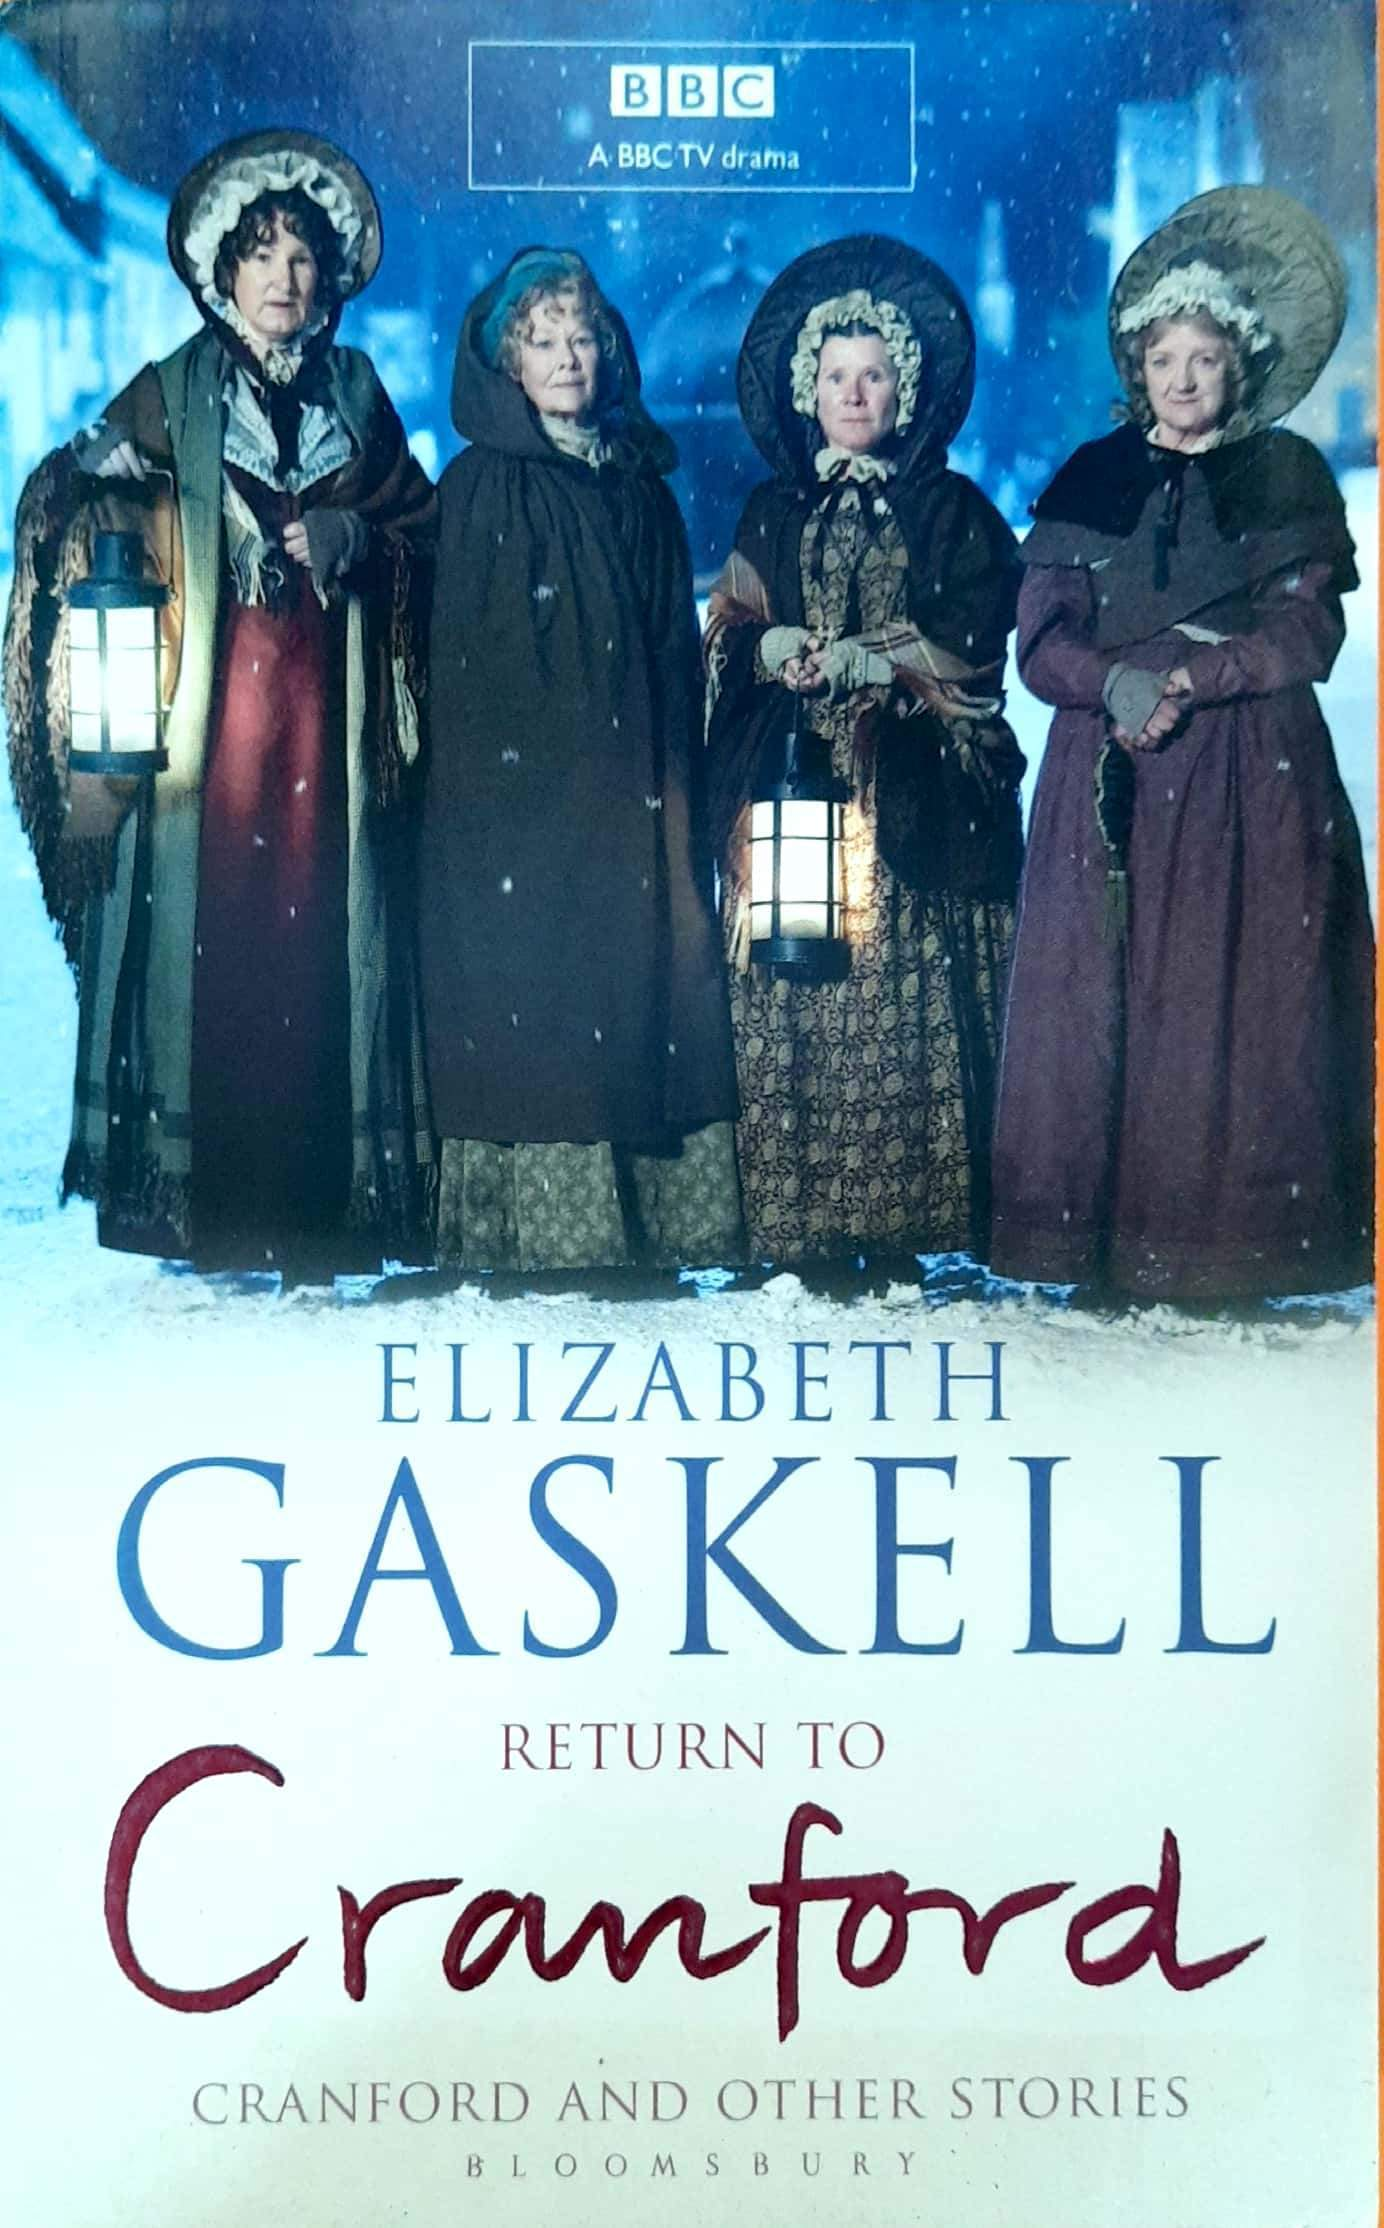 Return to Cranford: Cranford and other stories